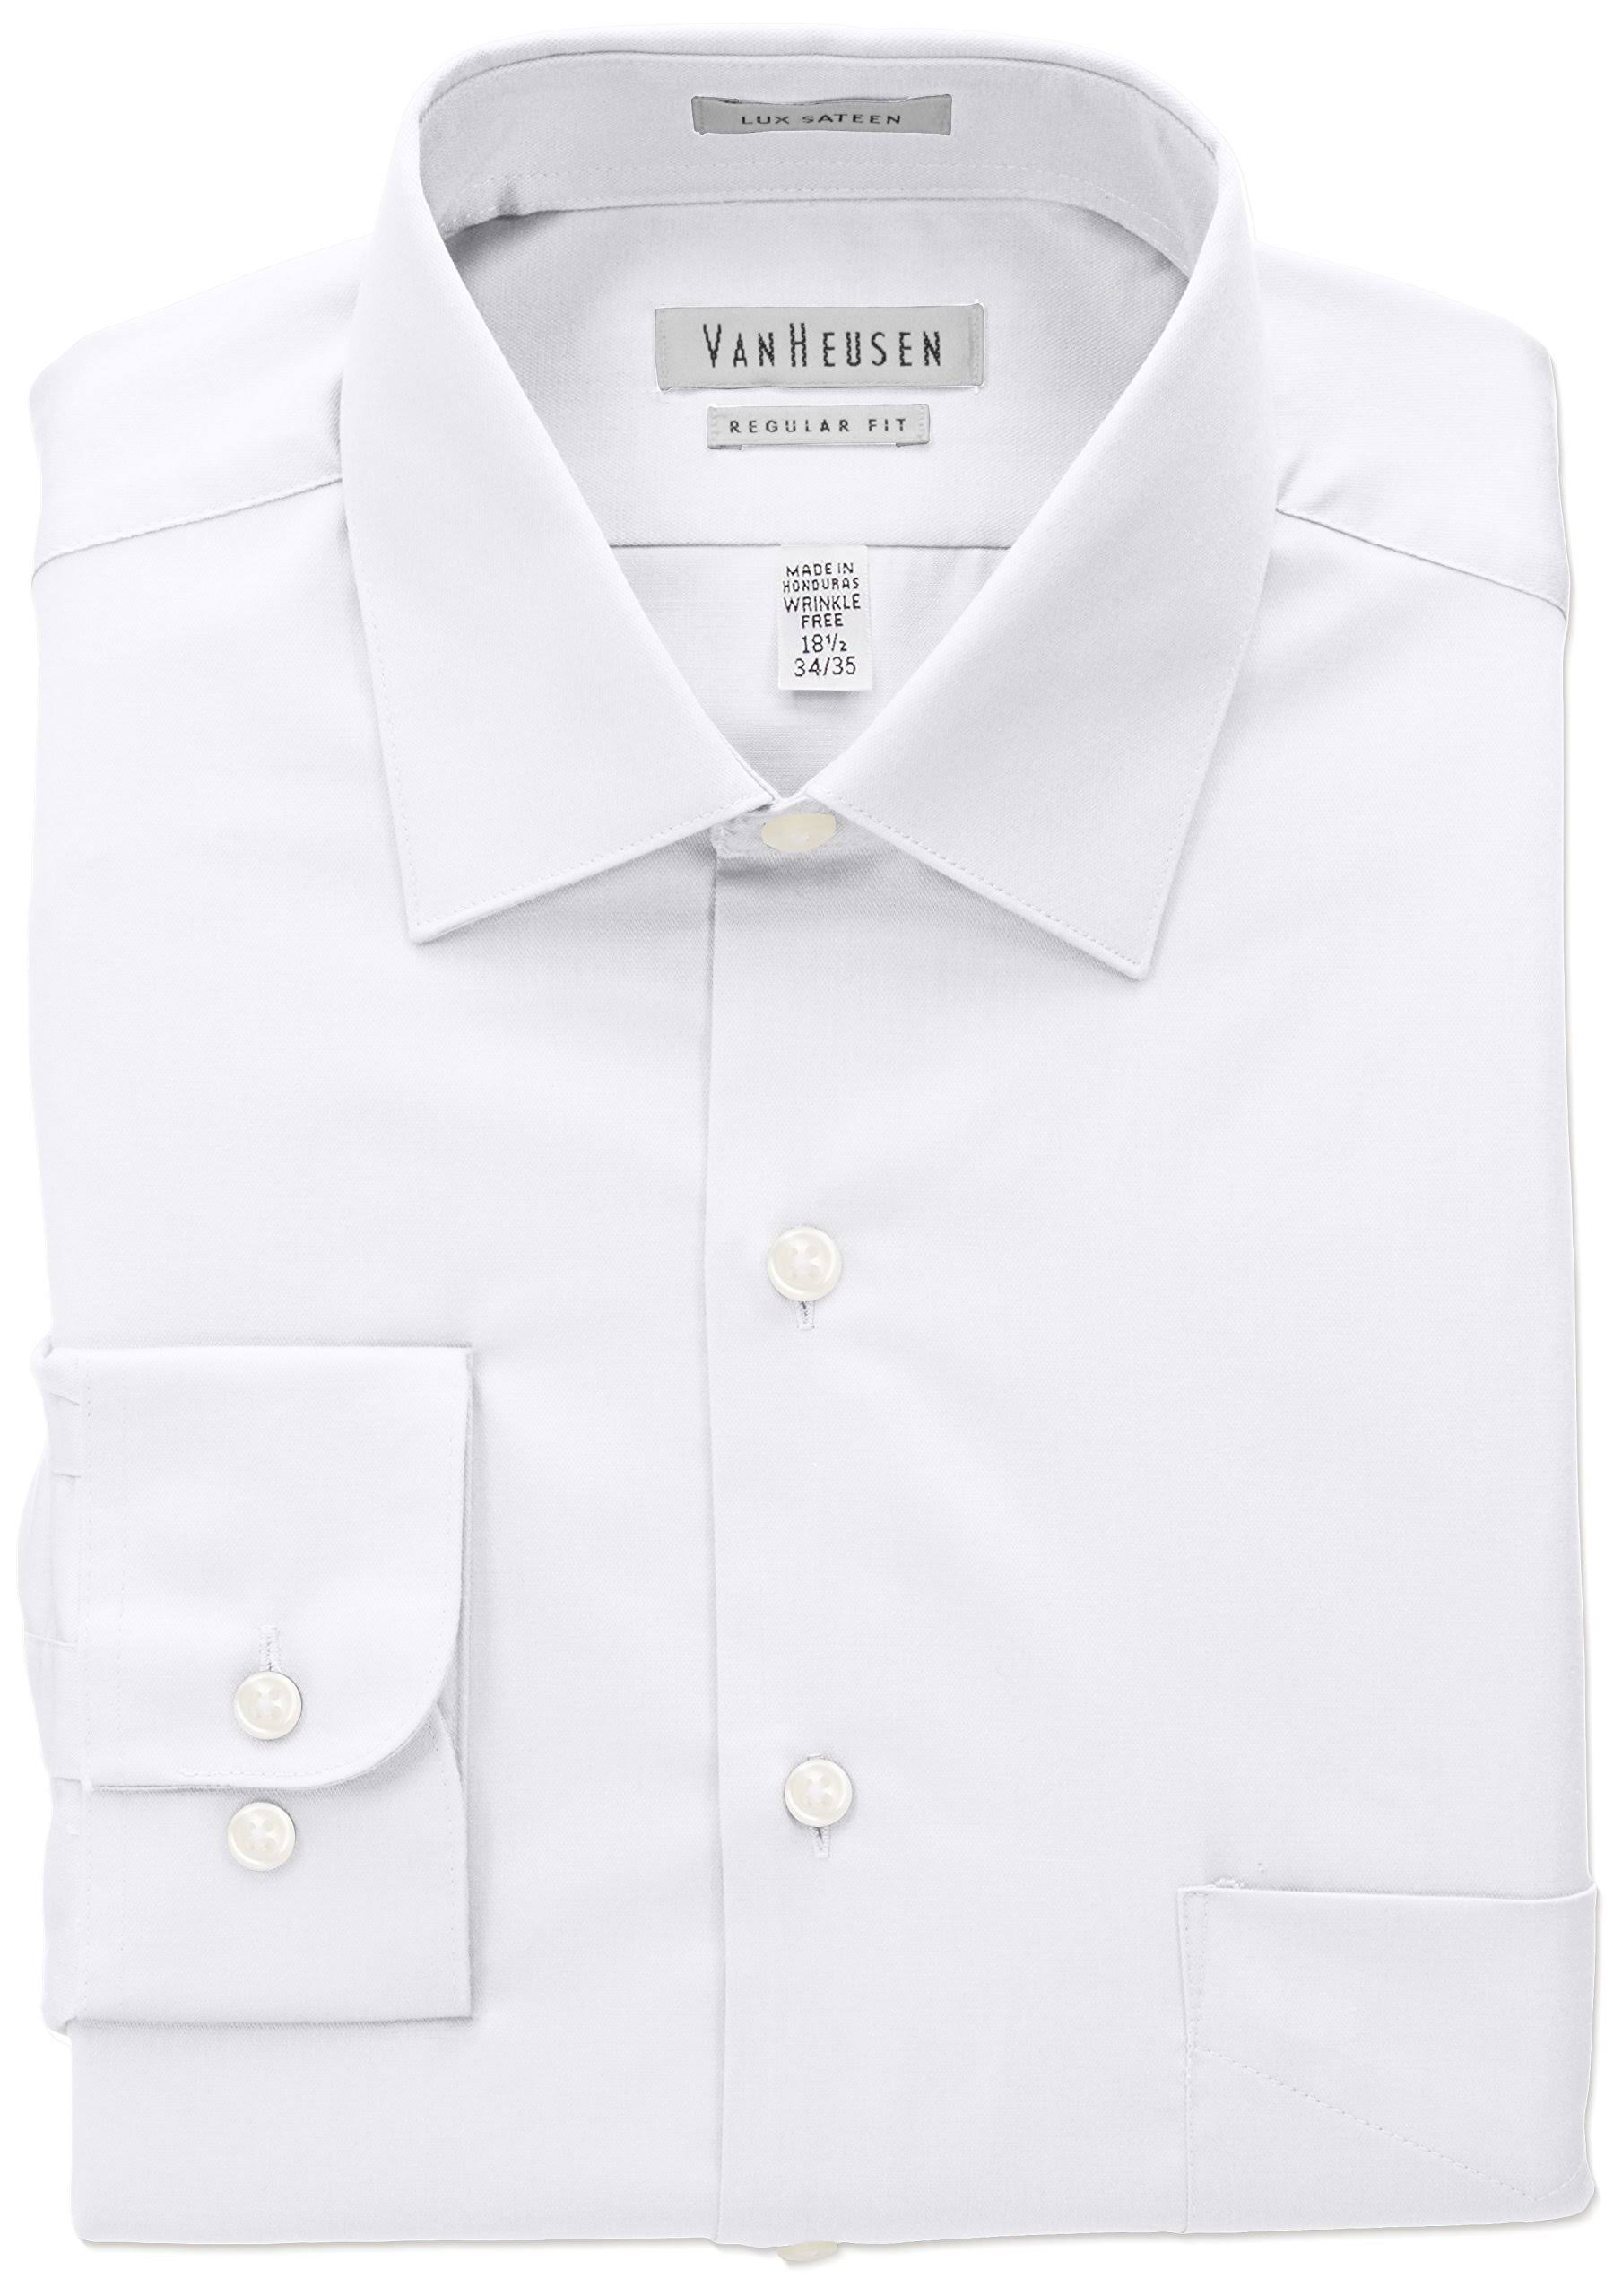 Van Heusen White Regular-Fit Dress Shirt